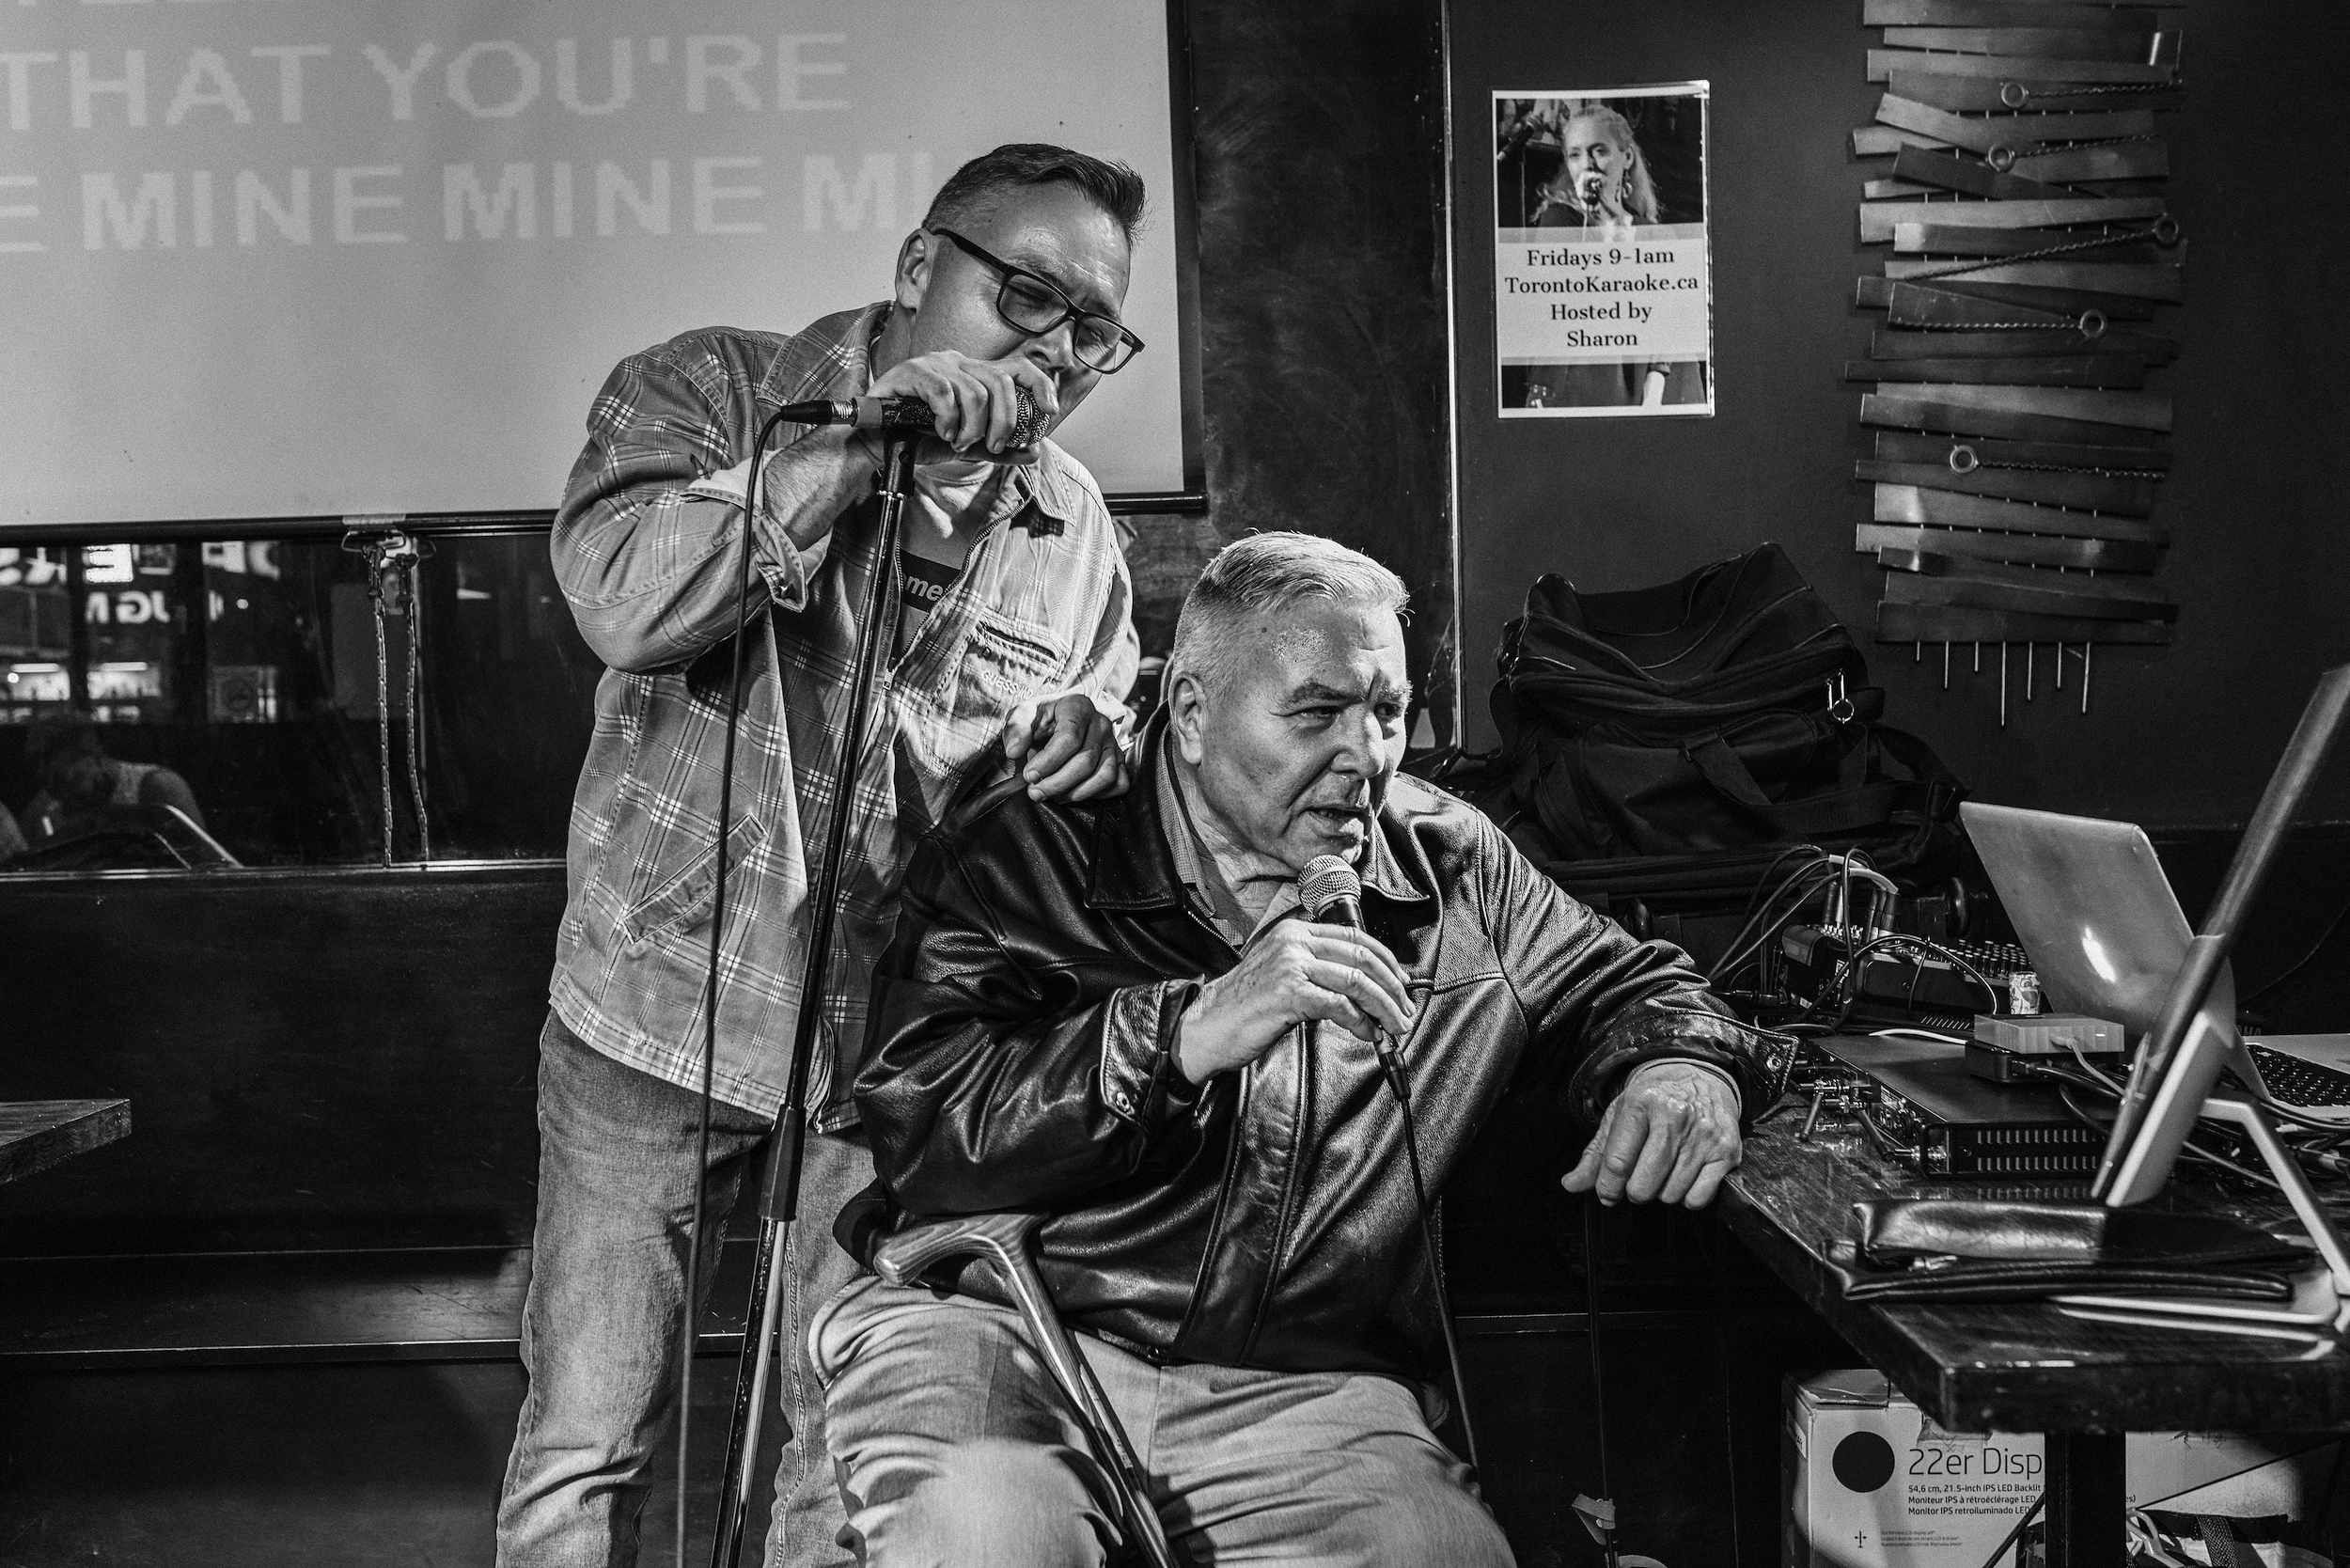 George Chuvalo singing karaoke with his son Mitch at the Pegasus Bar & Grill